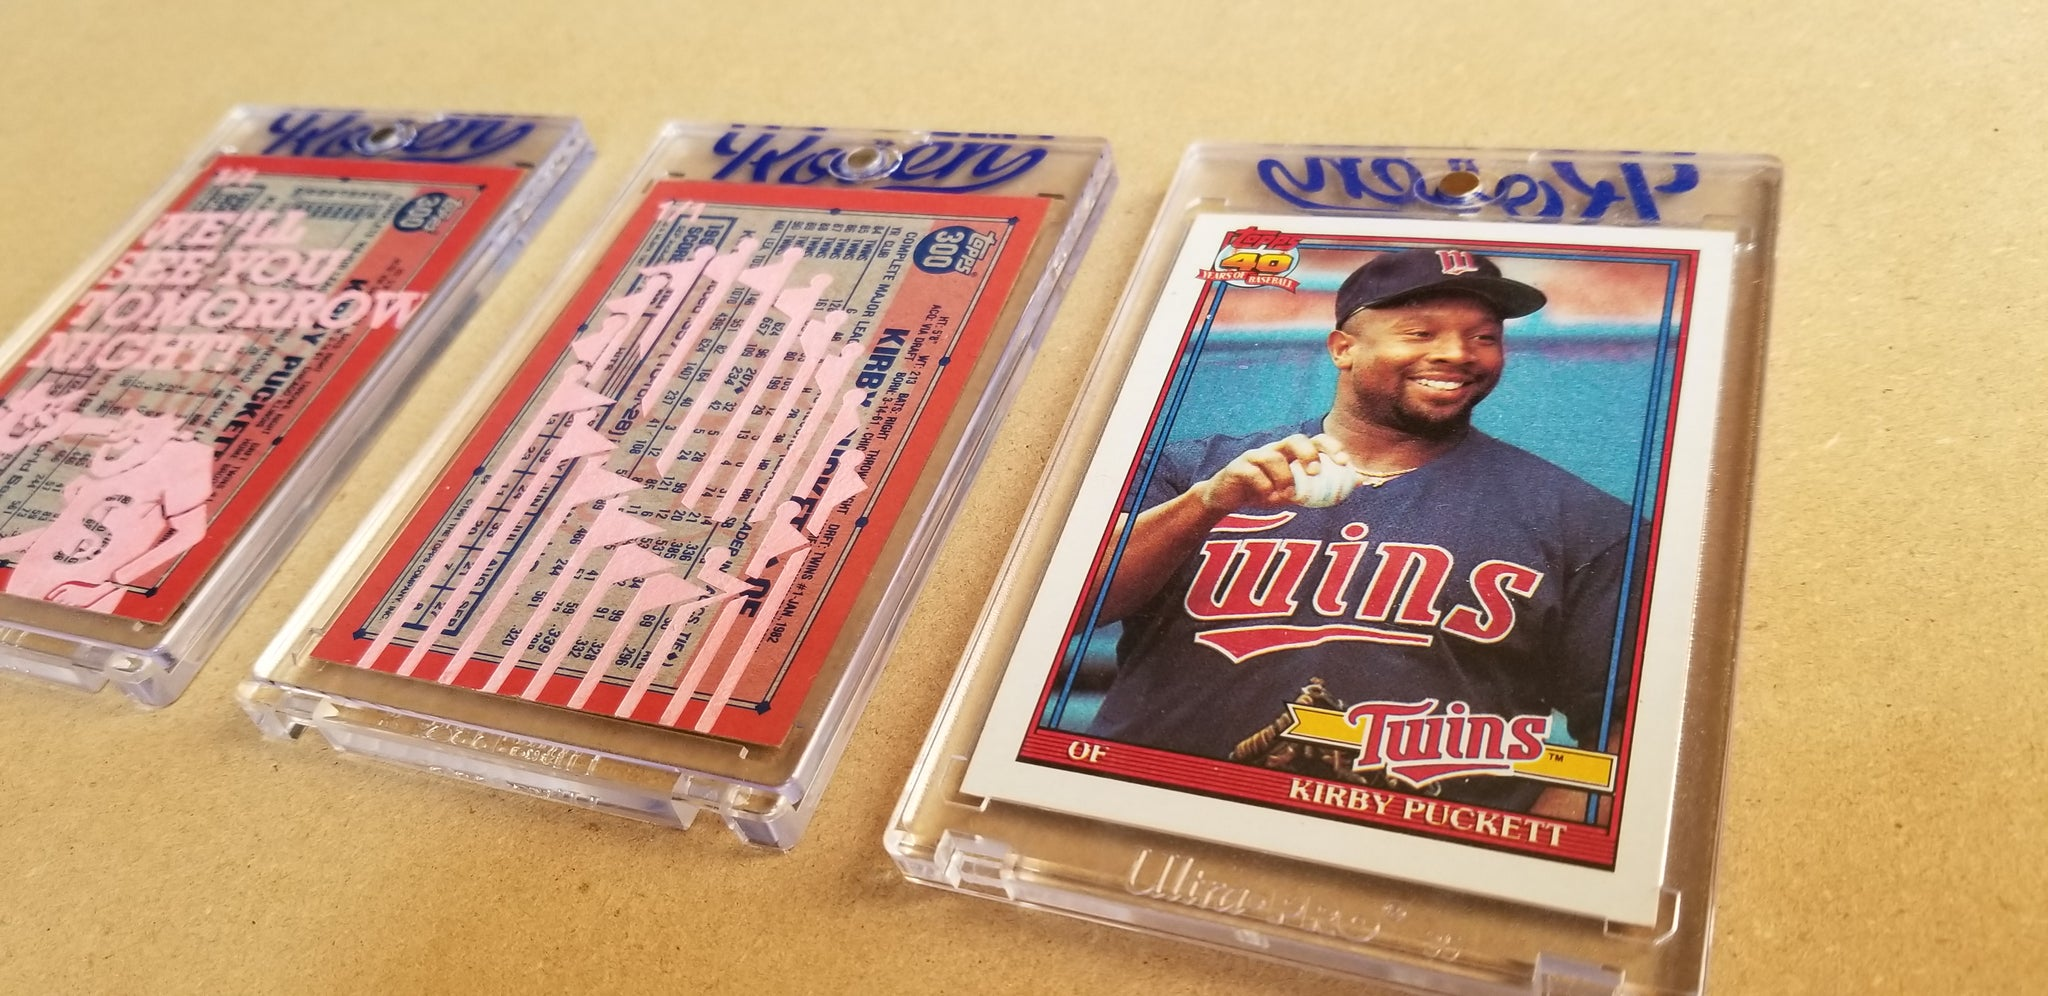 Baseball card art by Matthew Lee Rosen (aka Matthew Rosen) - 1991 Topps Kirby Puckett